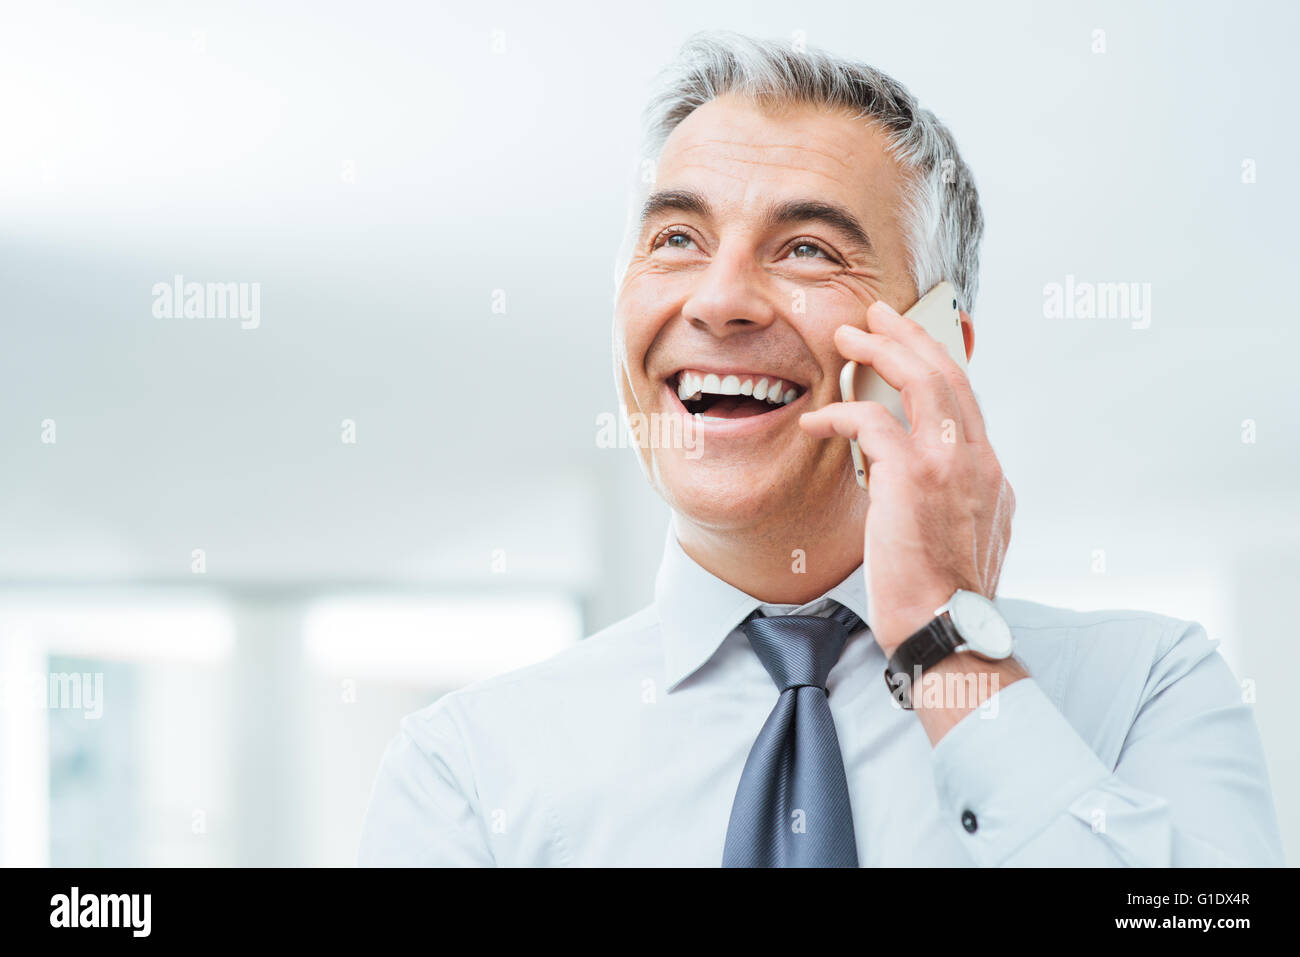 Confident smiling businessman having a phone call on his smart phone - Stock Image